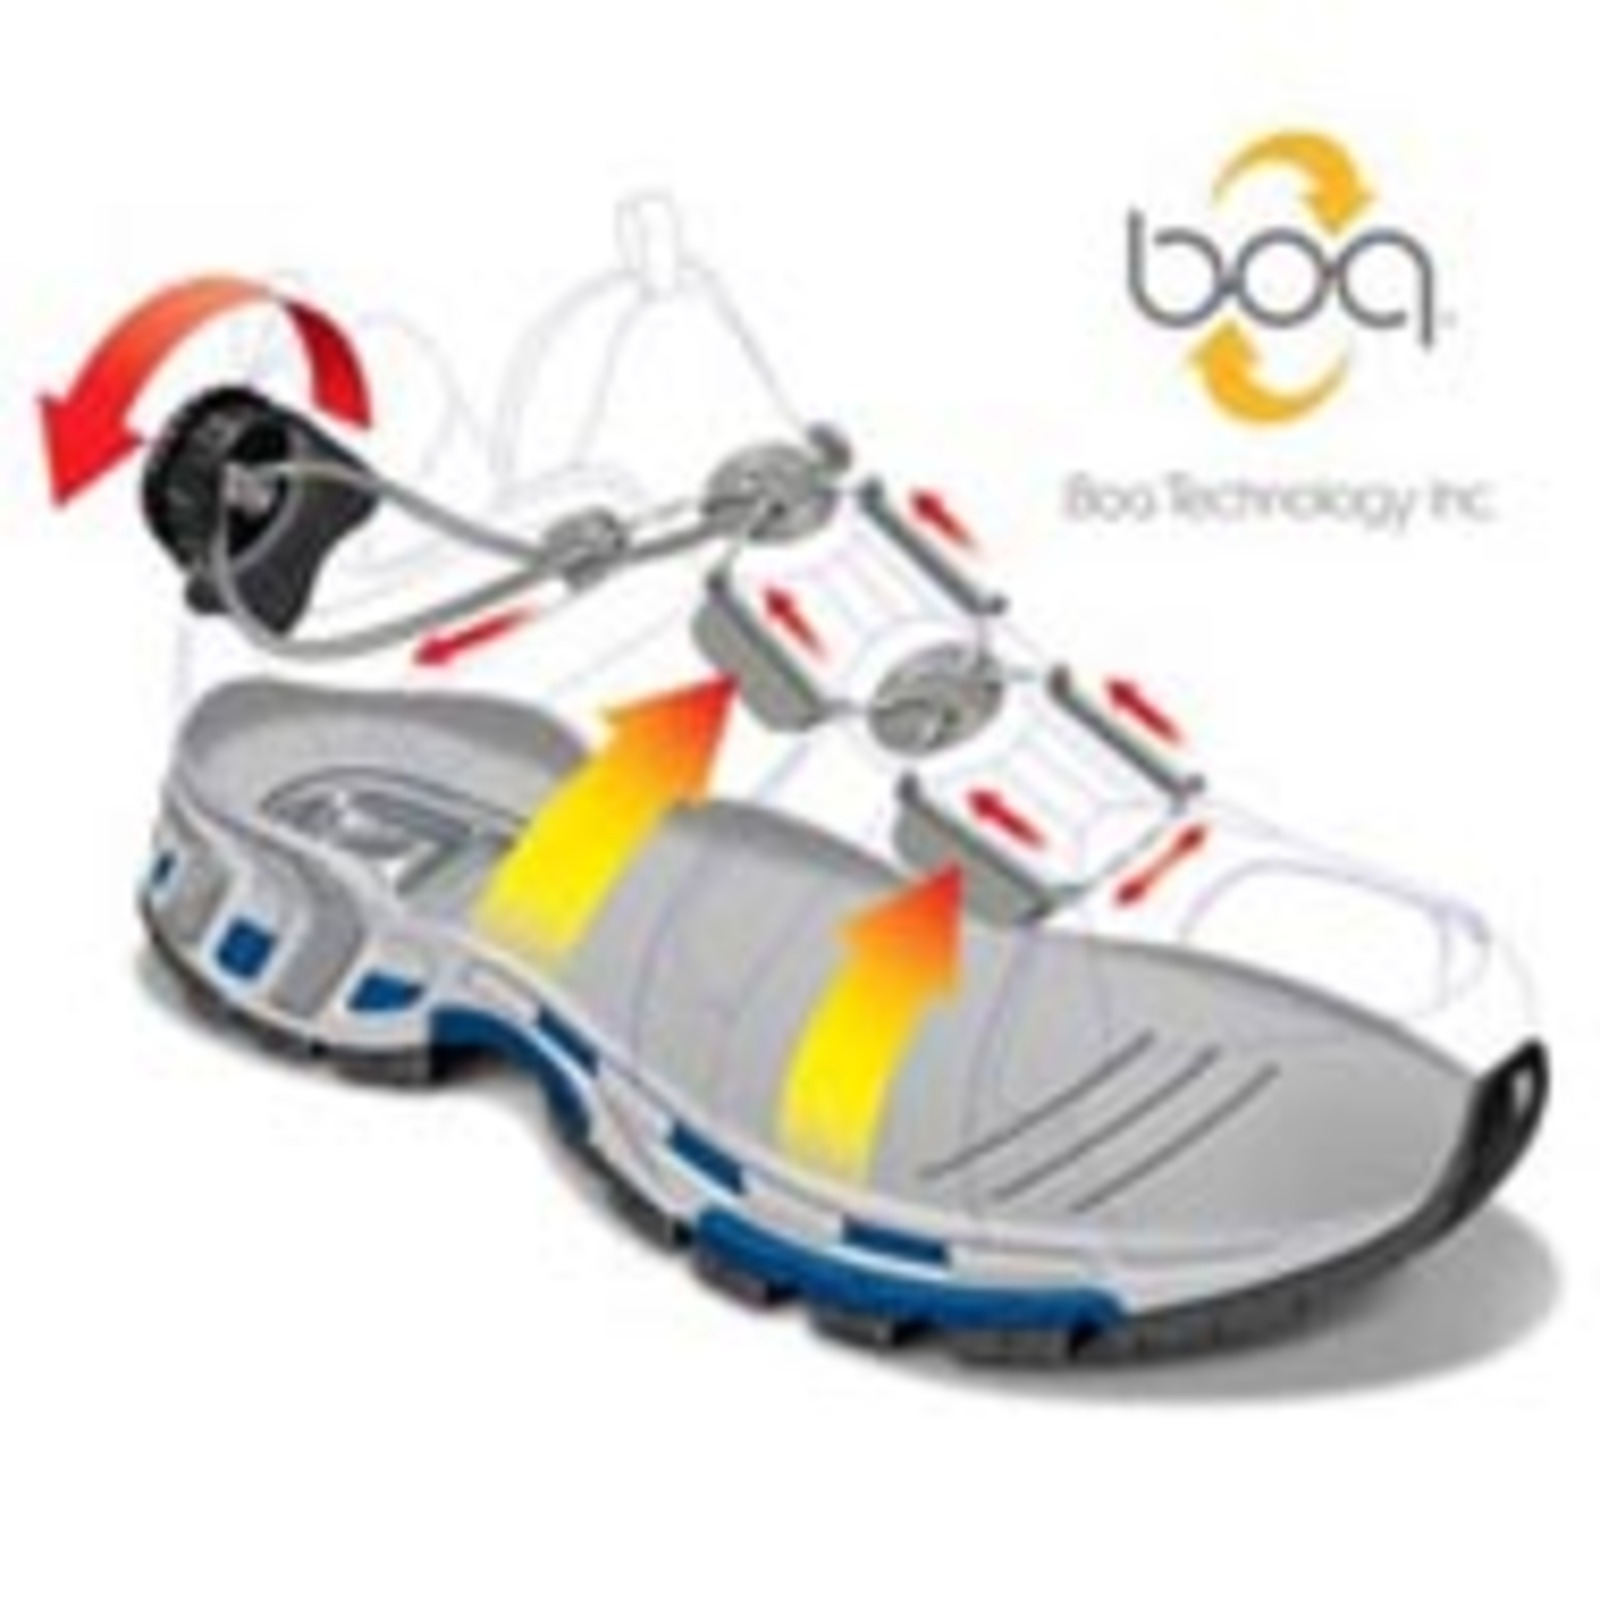 Running Shoes With Boa Laces